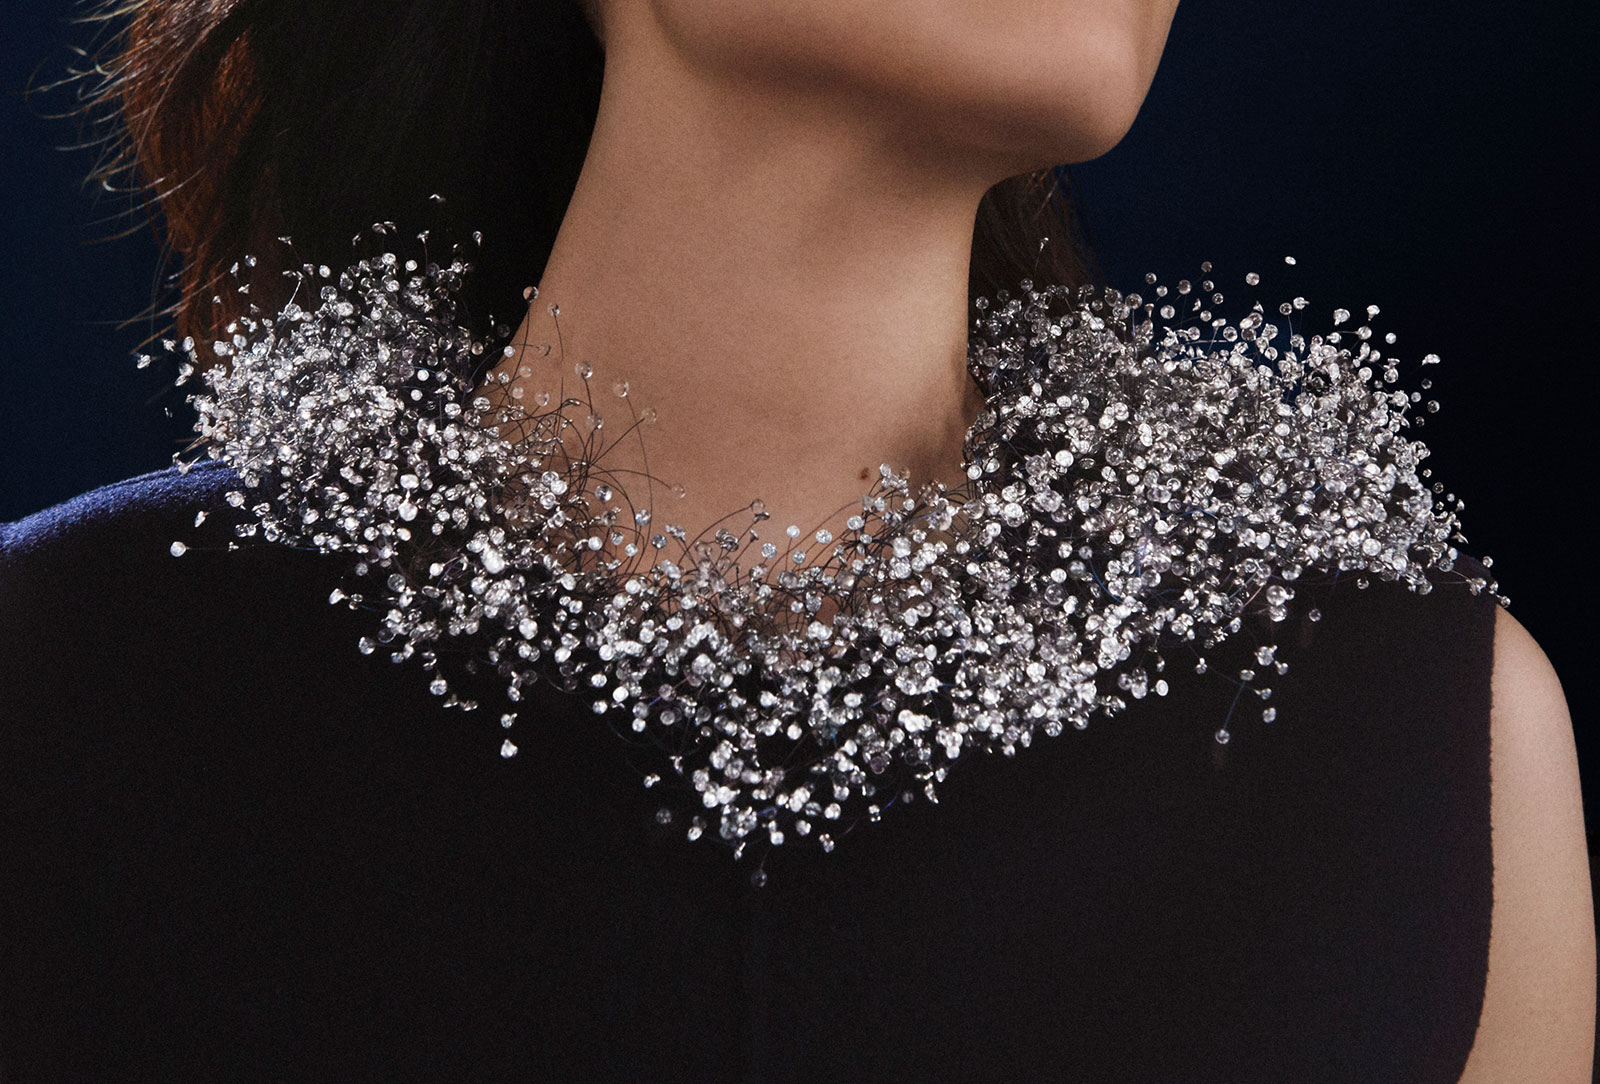 A total of 4,018 diamonds and miniature glass beads were strung on fine titanium threads to create the Nuage en Apesanteur high jewellery necklace